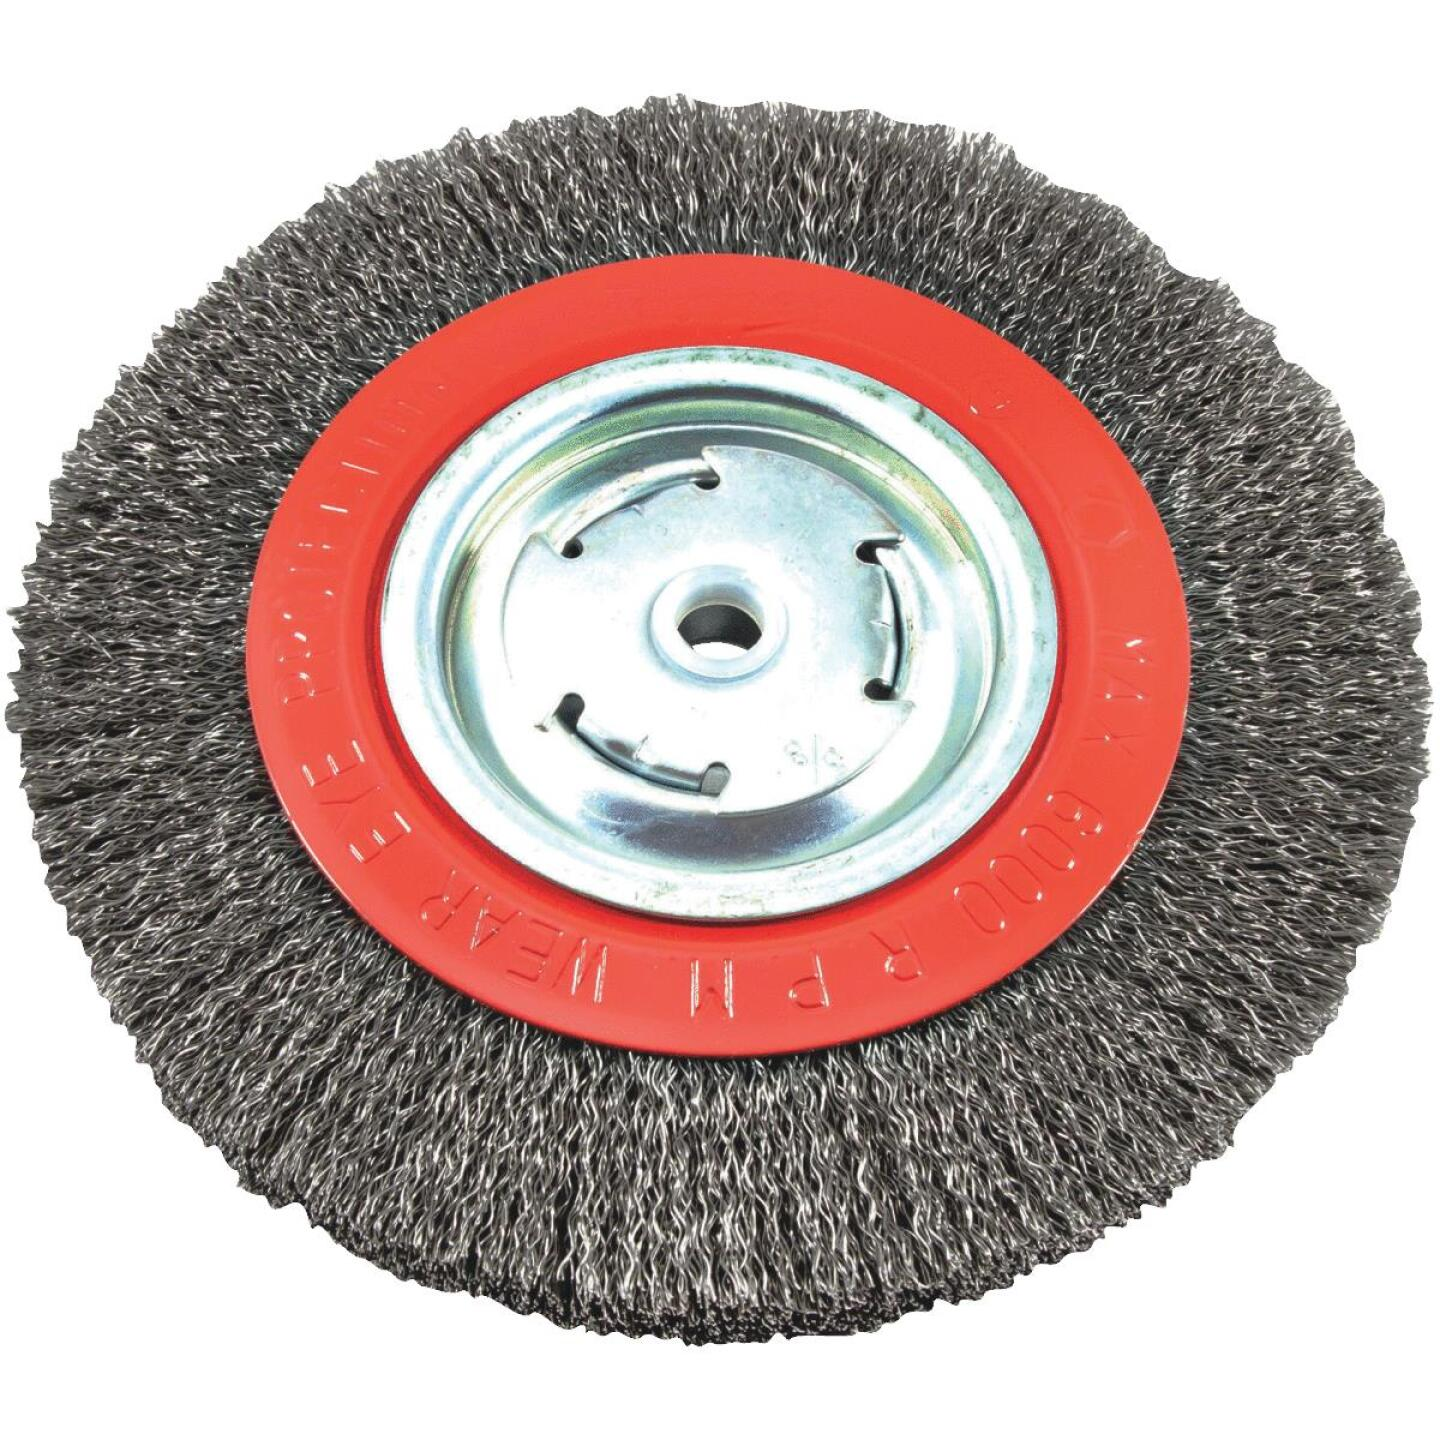 Forney 8 In. Crimped, Coarse .012 In. Bench Grinder Wire Wheel Image 1